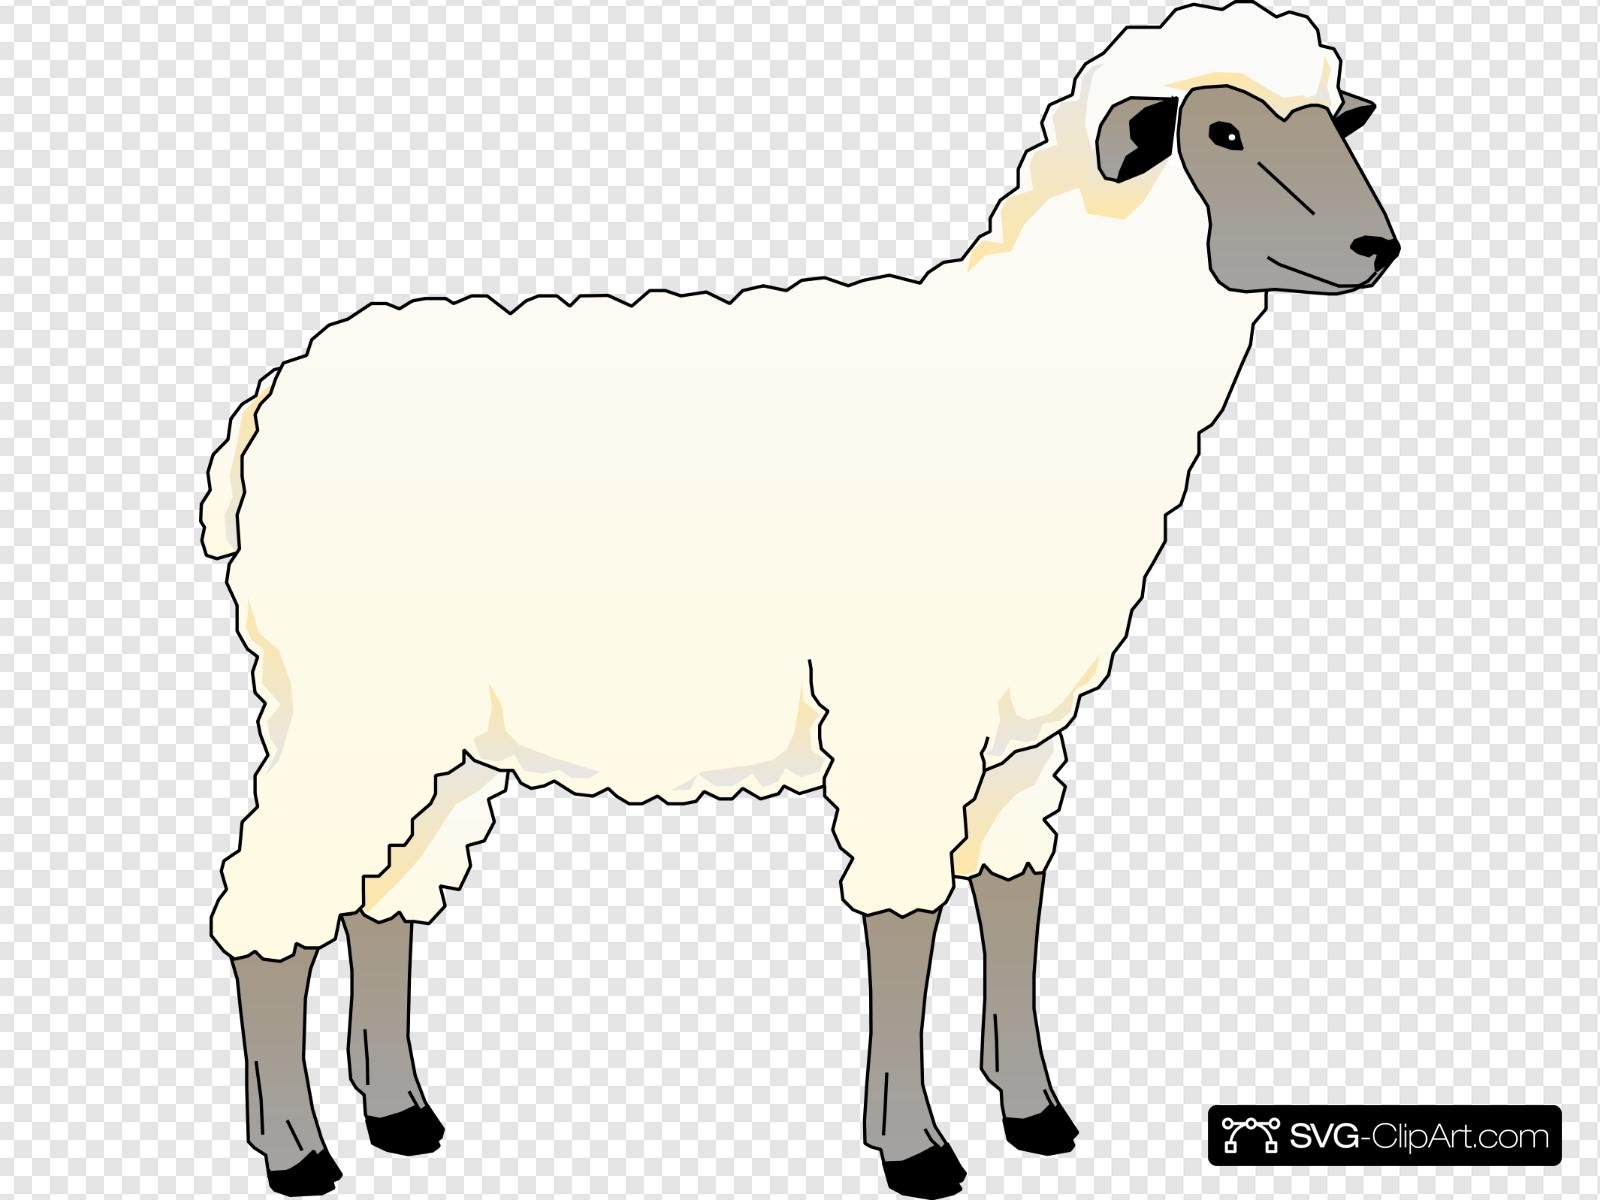 Clipart sheep wooly sheep. Clip art icon and